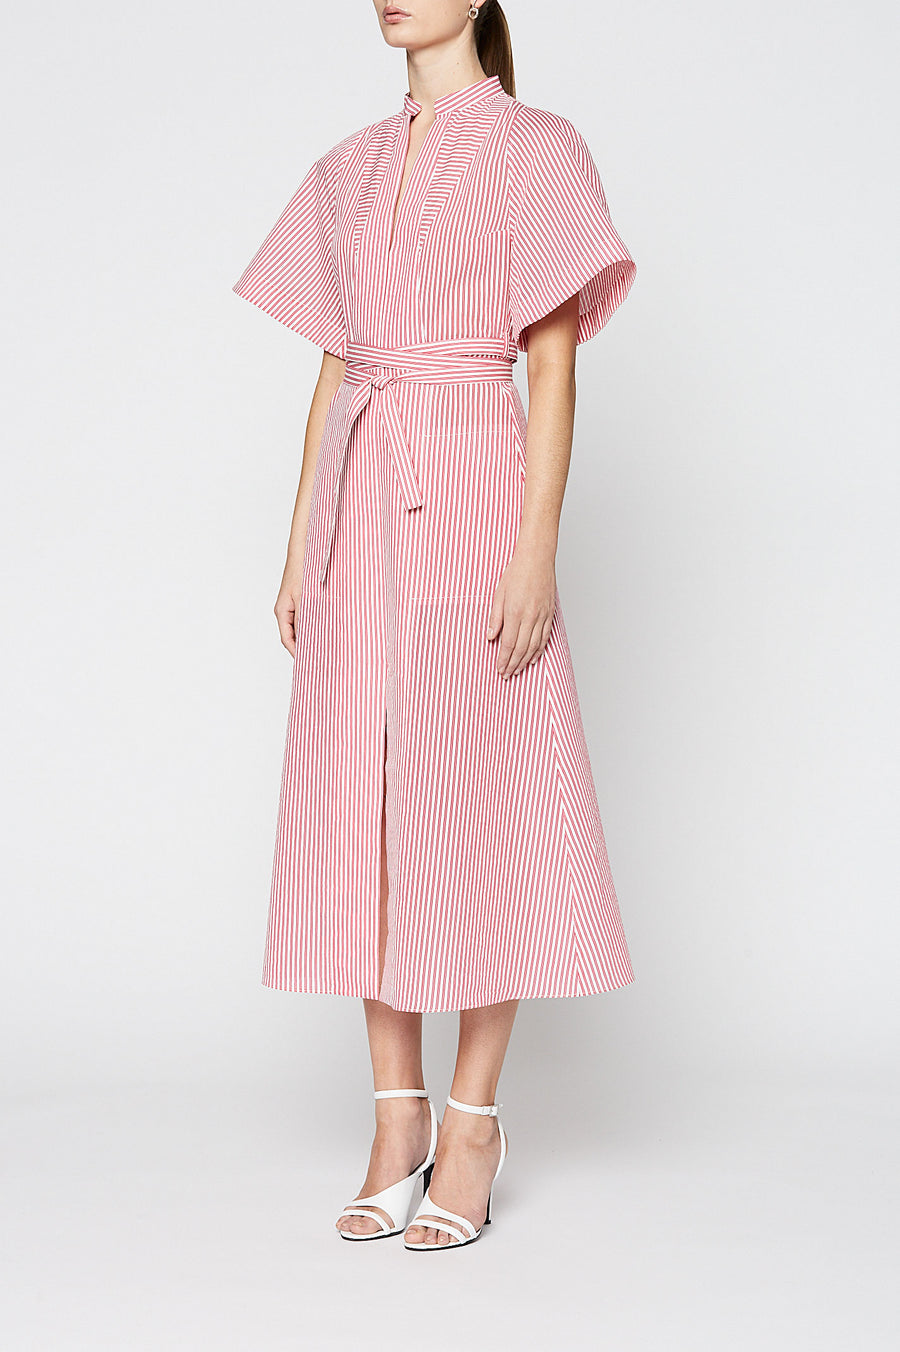 STRIPED COTTON DRESS, PINK color